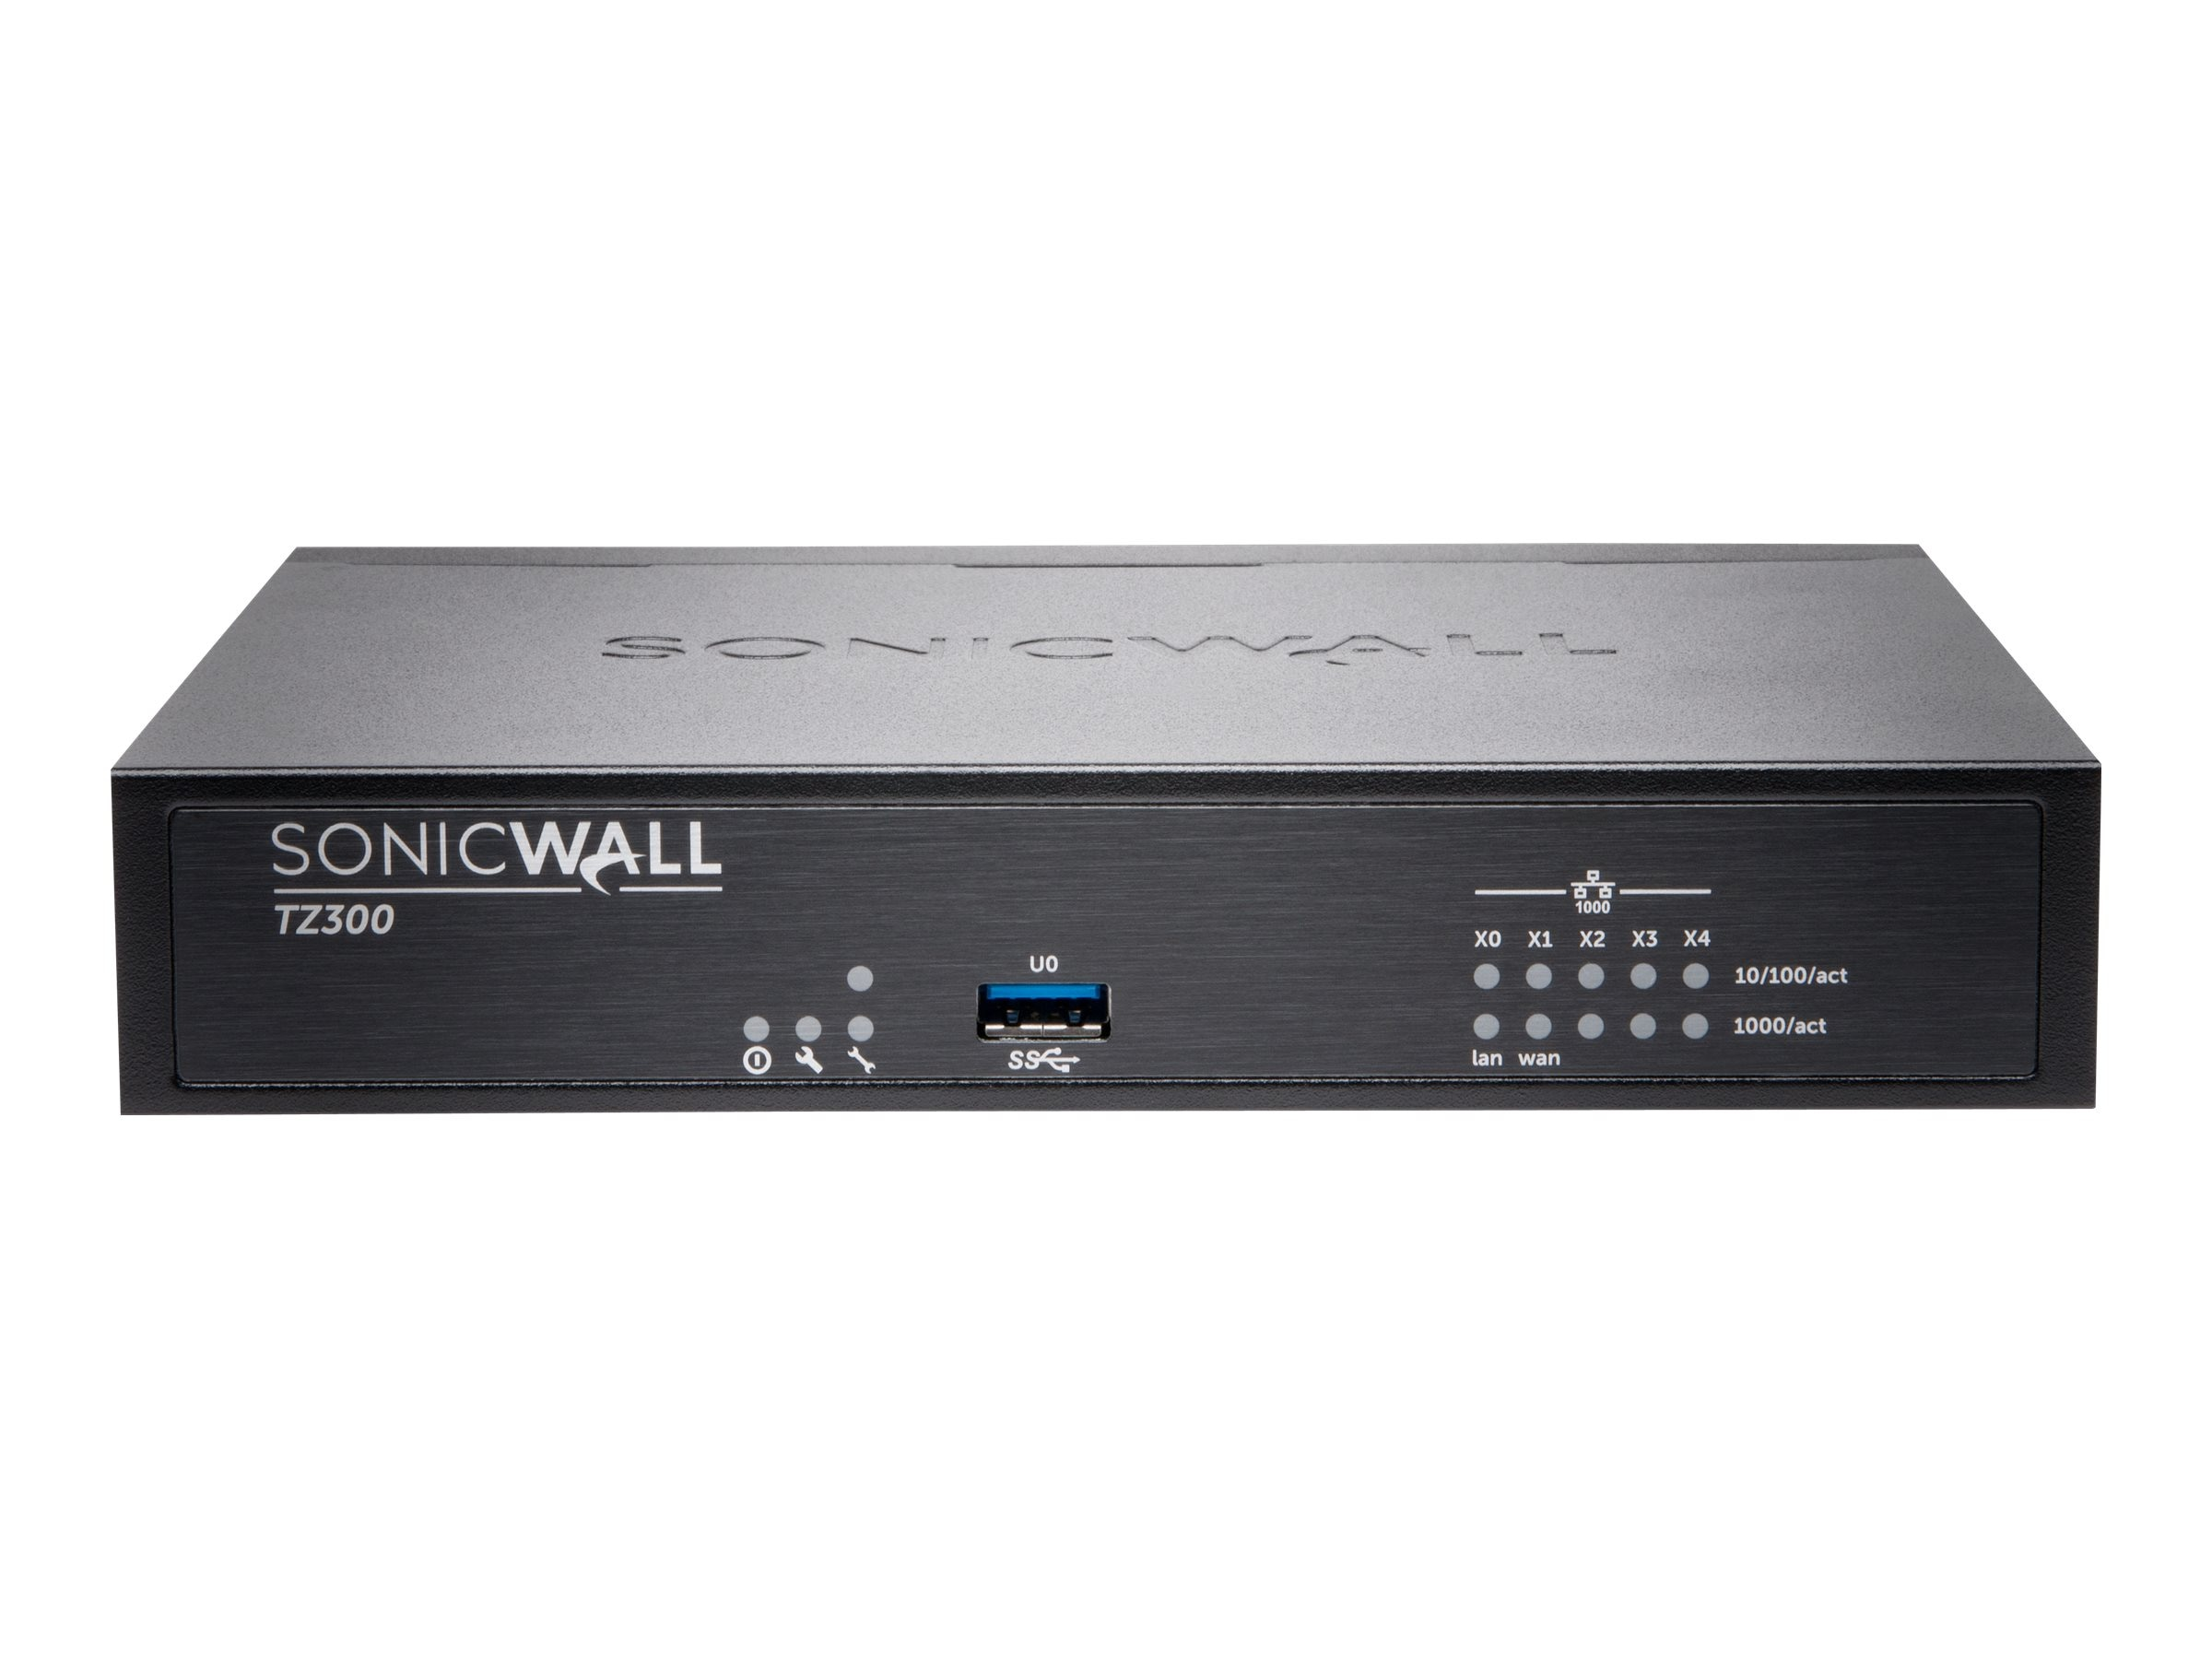 SonicWALL 01-SSC-0581 Image 2